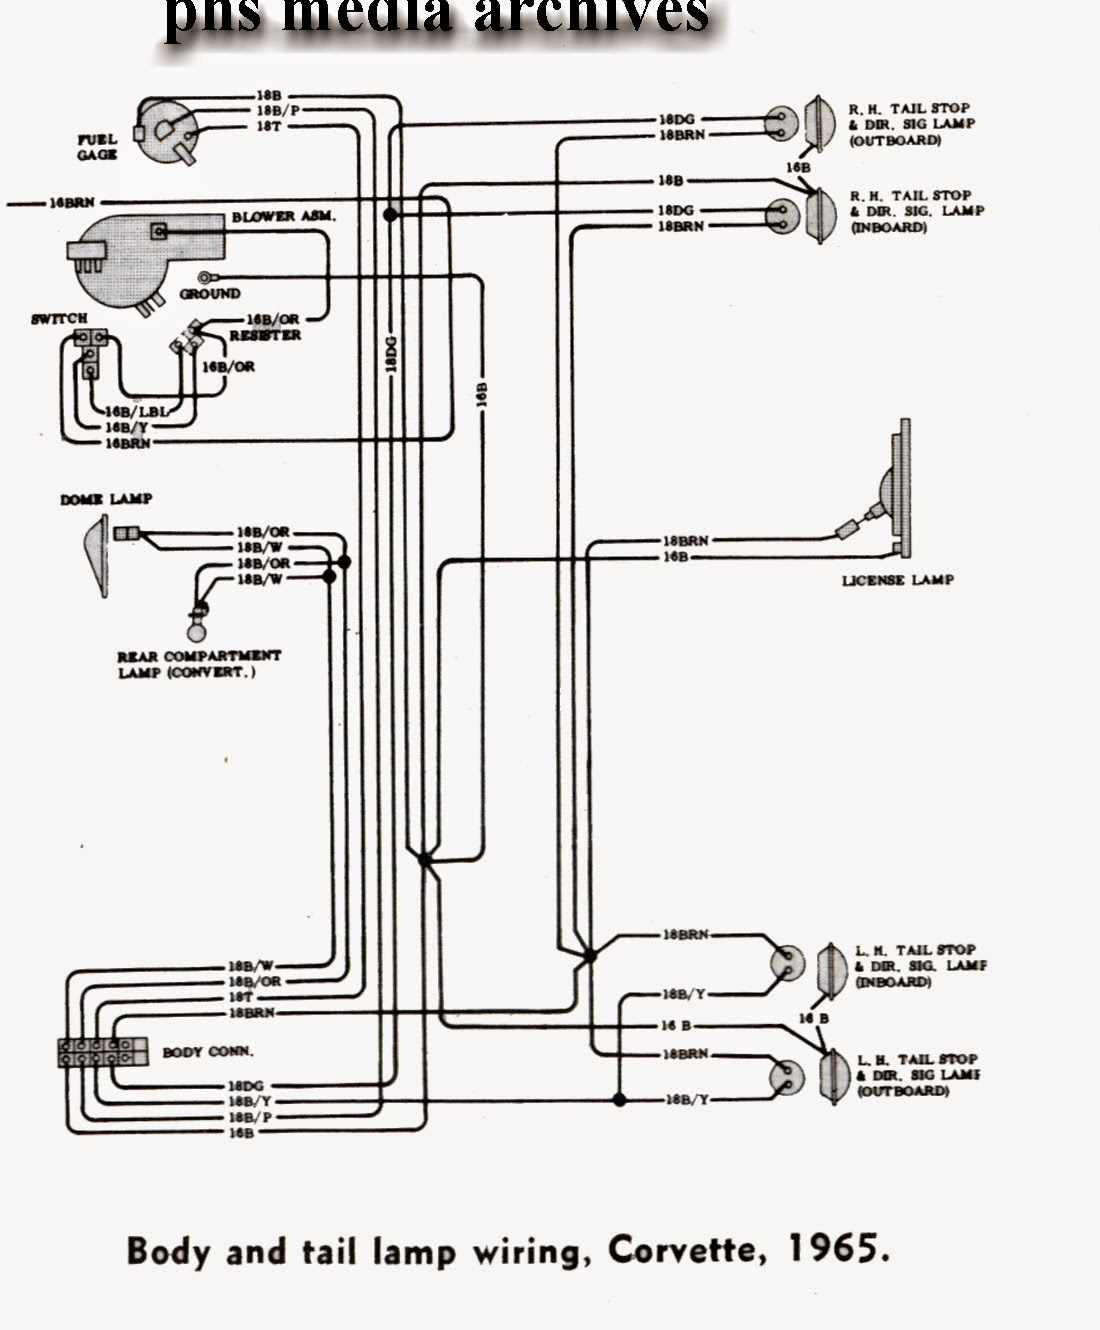 1965 corvette wiring diagram for tail